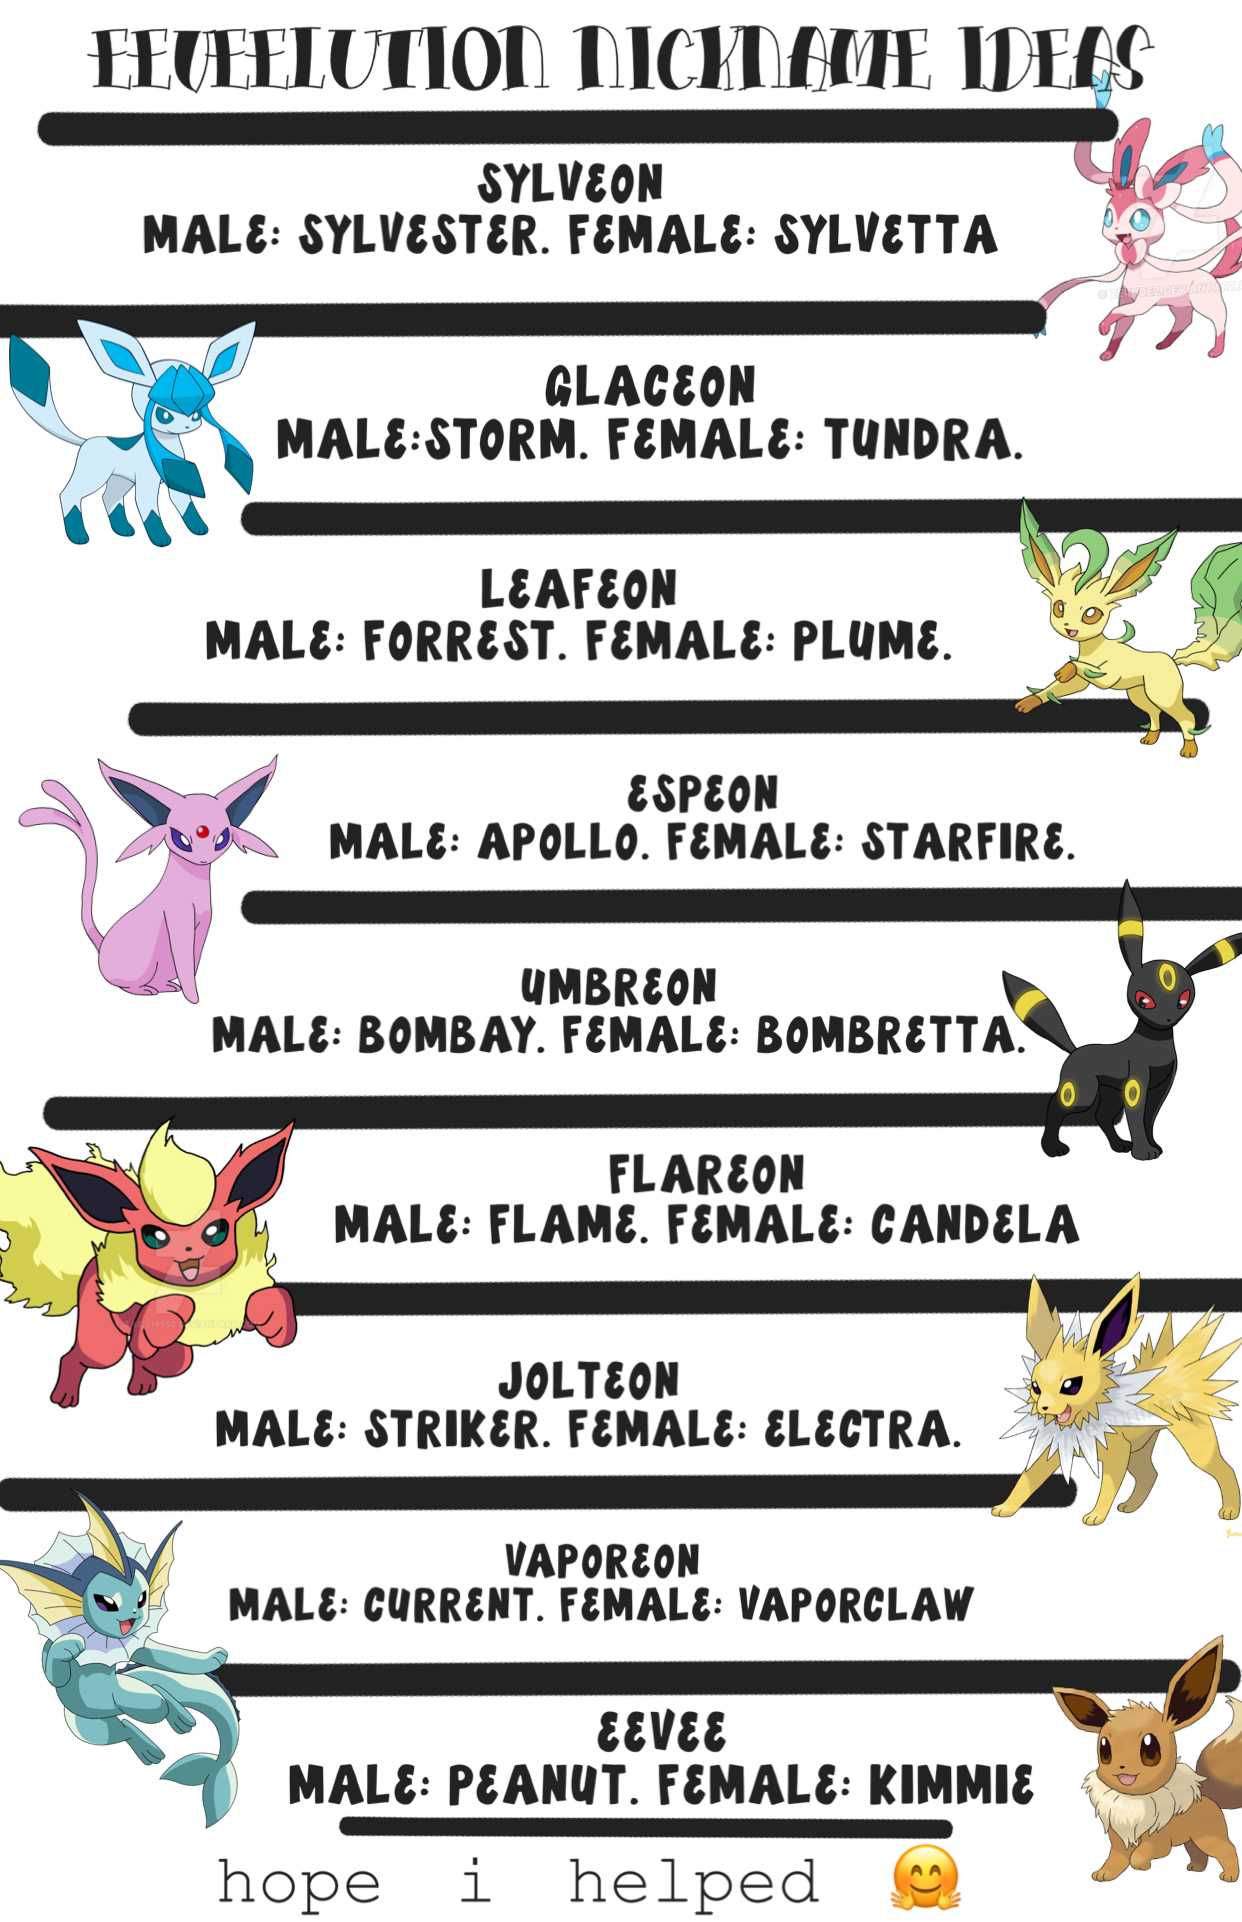 Male Female Nickname Ideas For Each Eeveeloution Feel Free To Suggest New Names Pokemon Crossover Pokemon Pictures Eevee